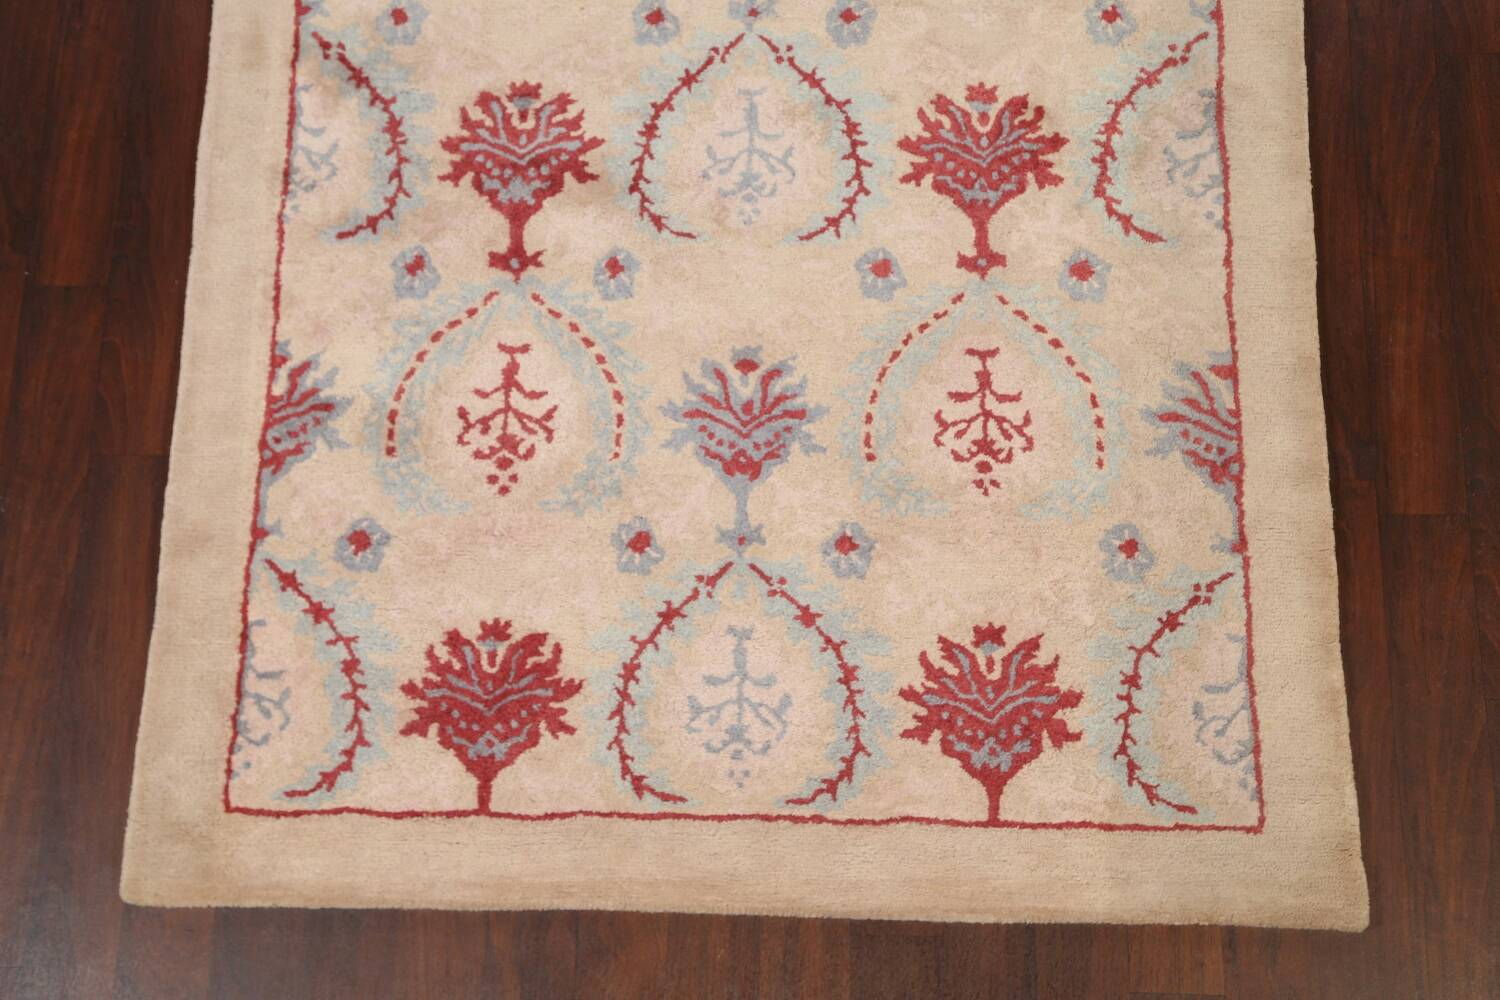 Pale Coral Hand-Tufted Floral Area Rug 6x8 image 5